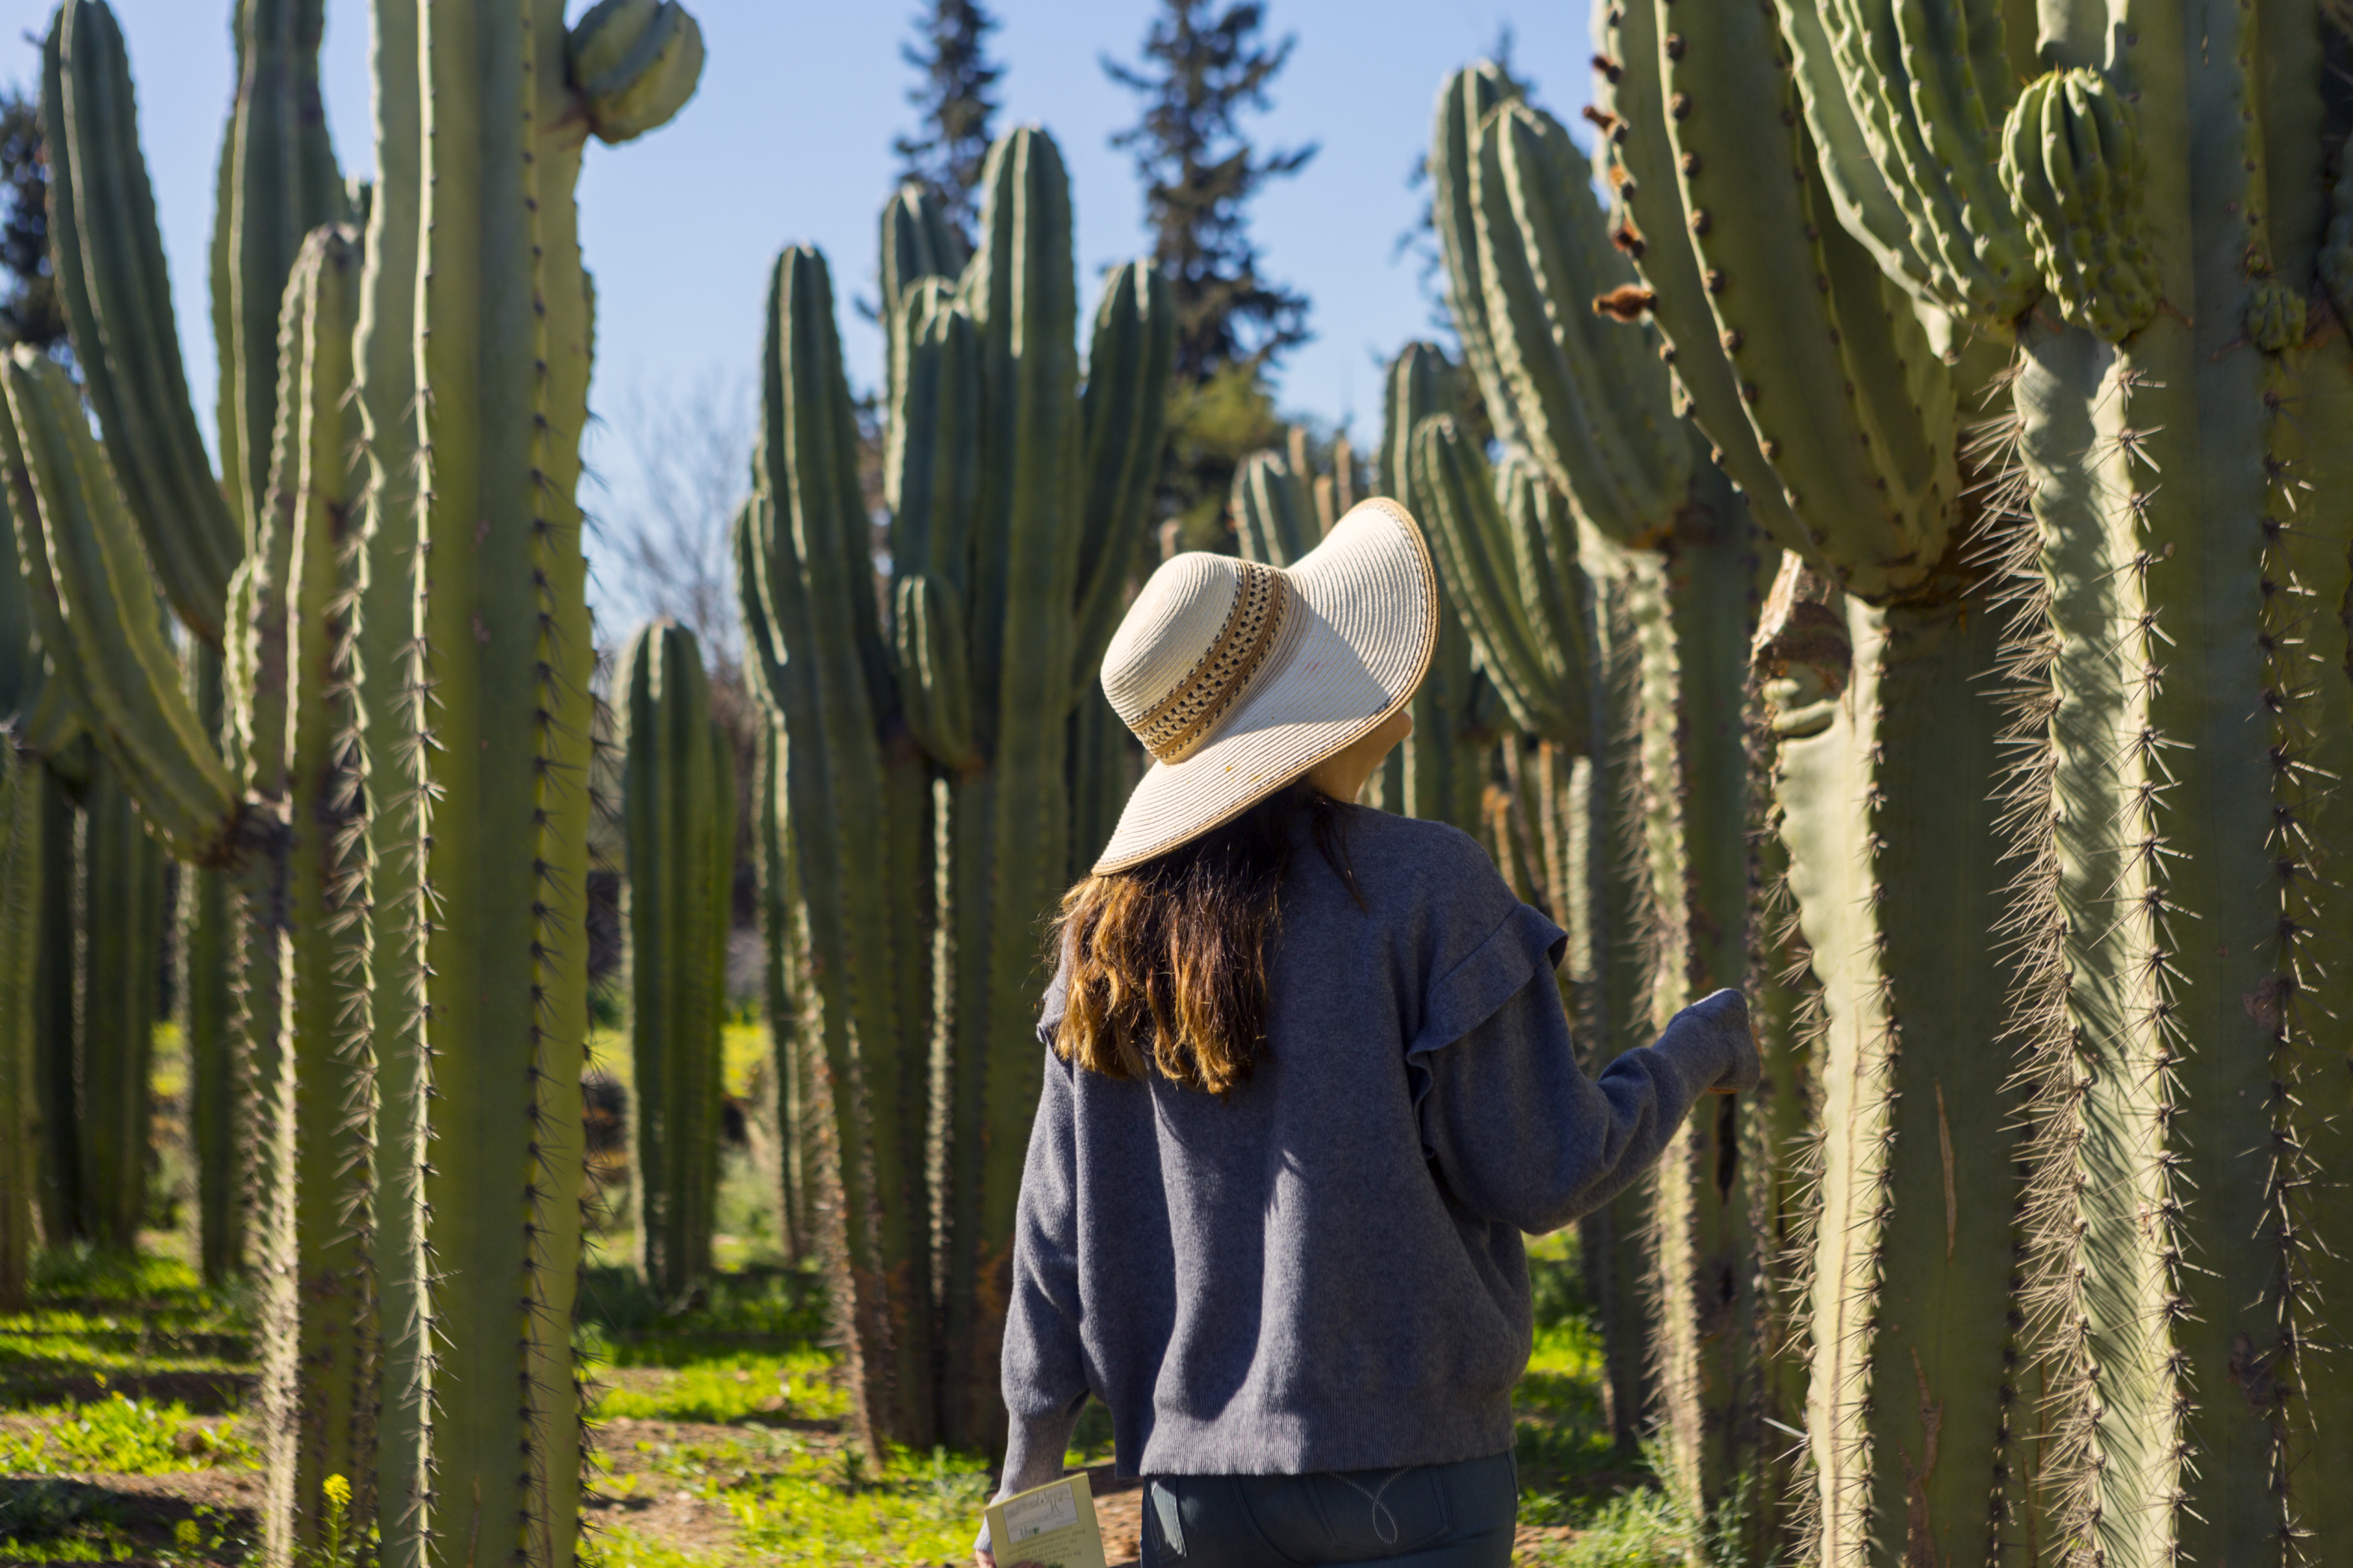 Cactus Thiemann Marrakesh Morocco Attractions Lonely